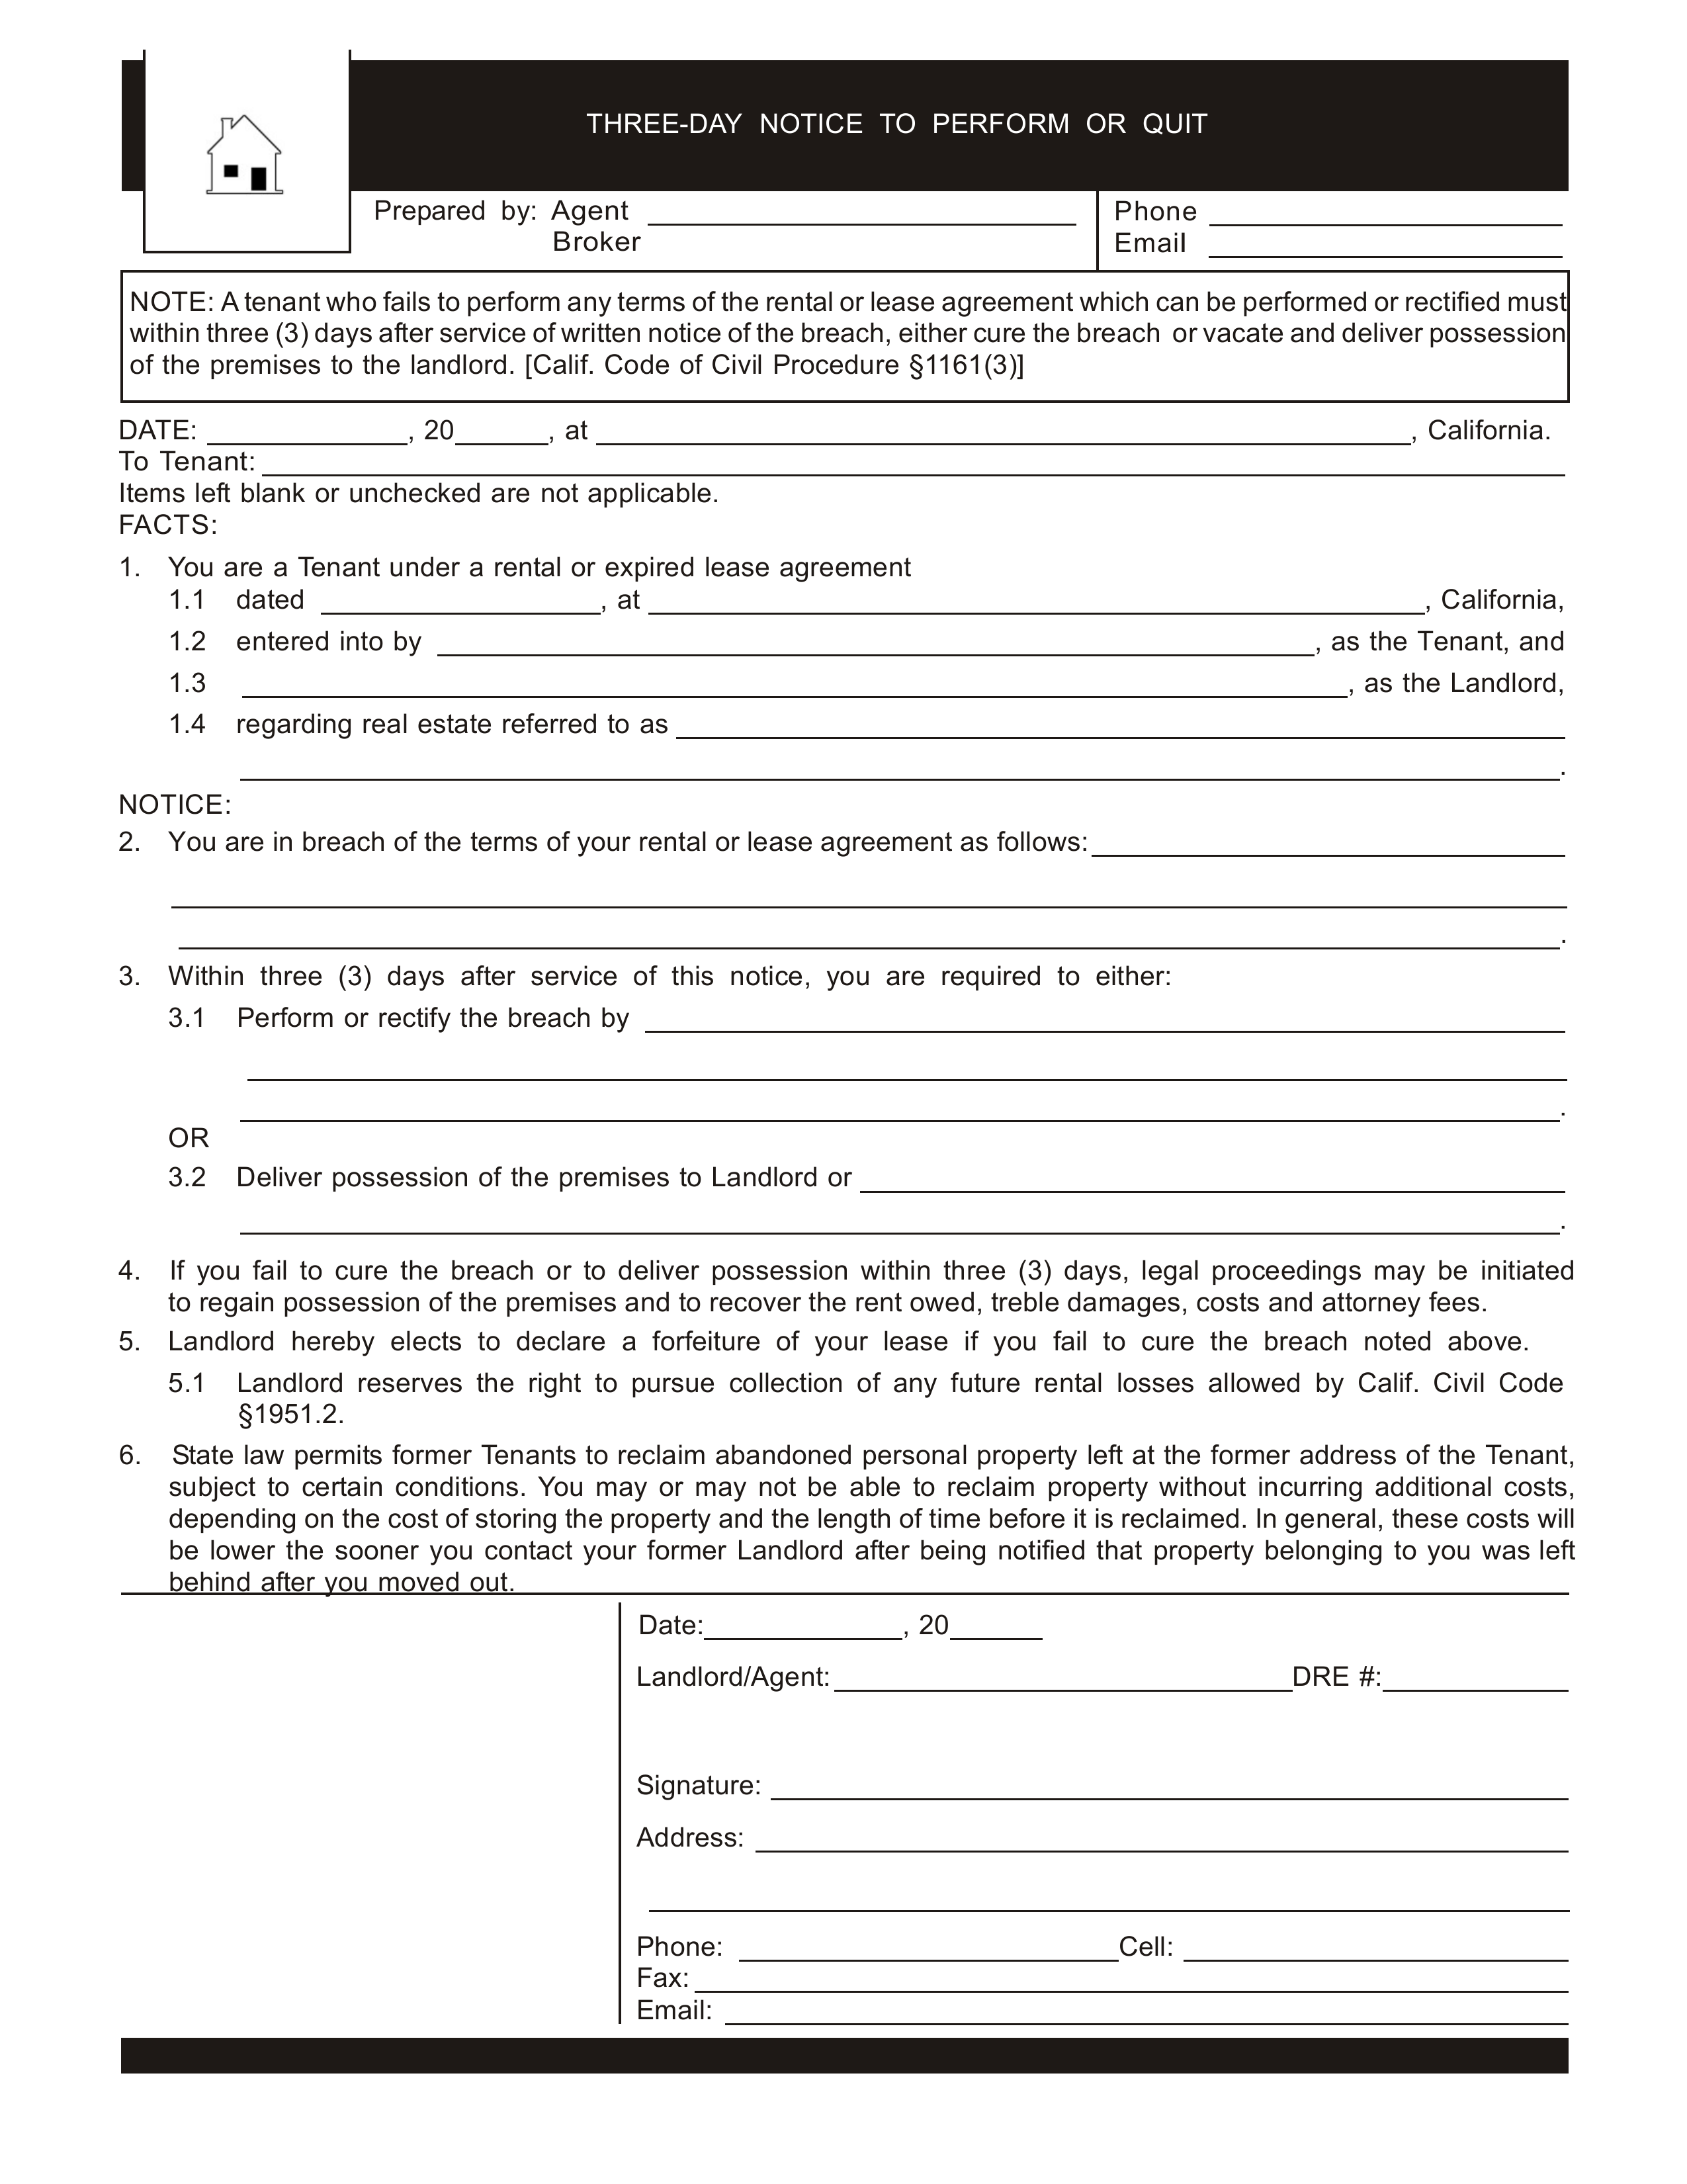 California 3 Day Notice To Quit Form